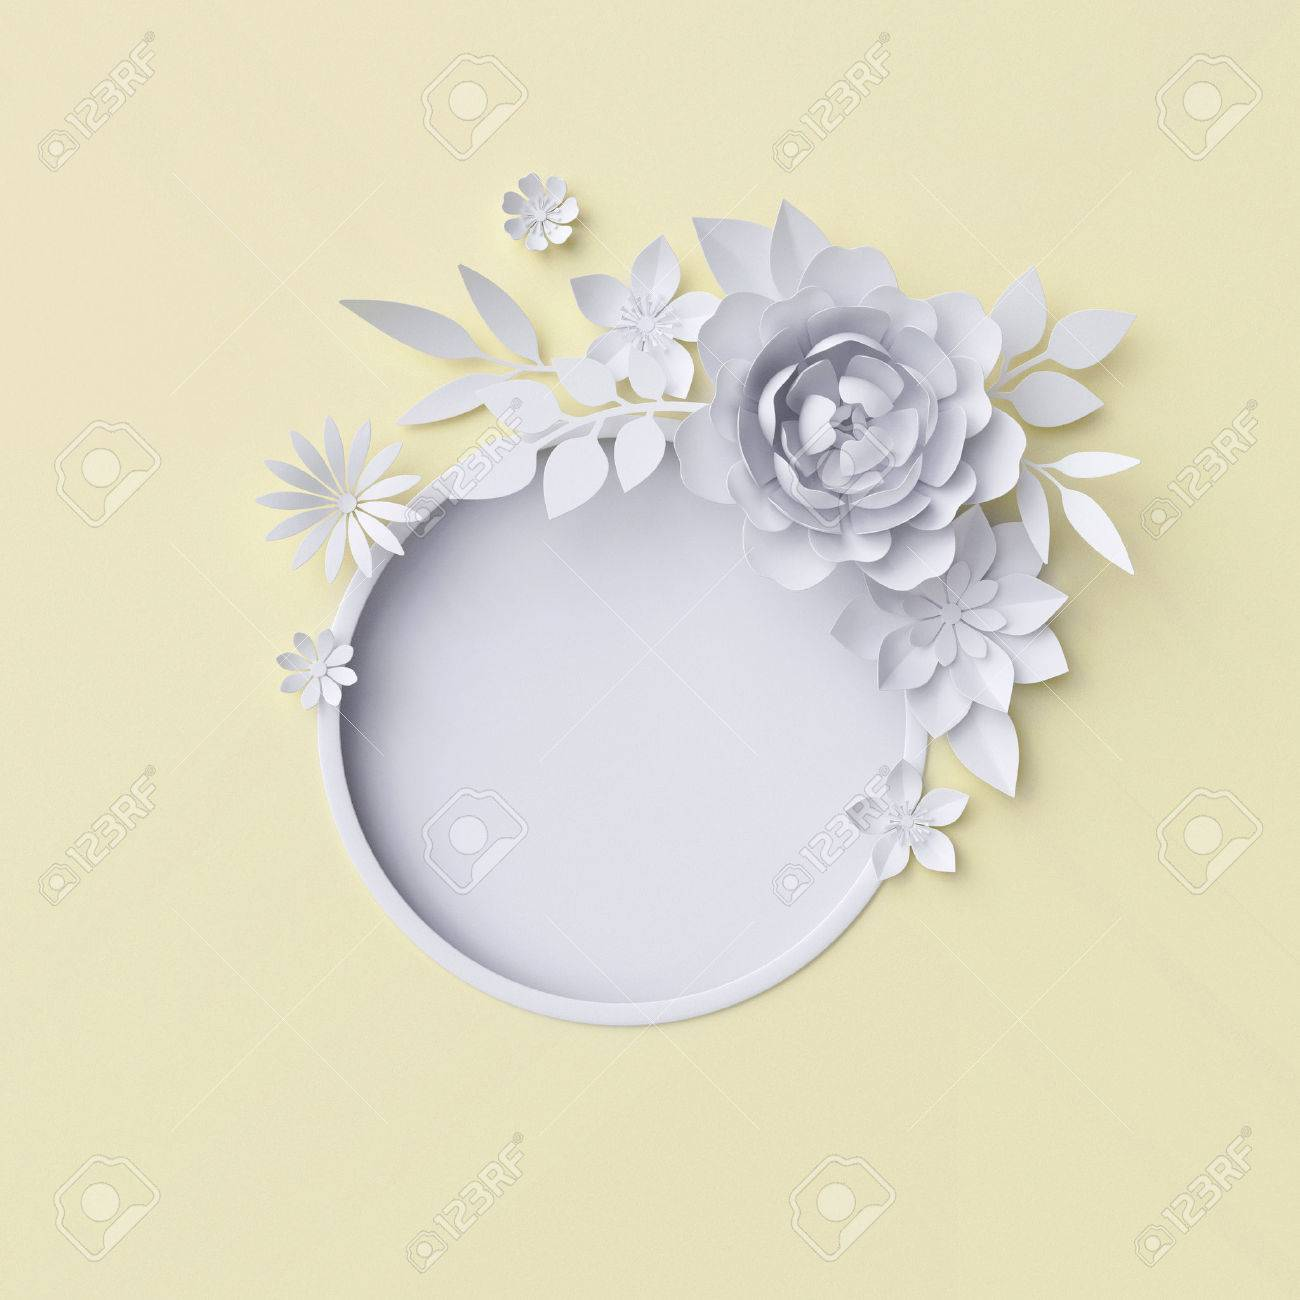 3d illustration white paper flowers decorative floral background 3d illustration white paper flowers decorative floral background wedding album page greeting mightylinksfo